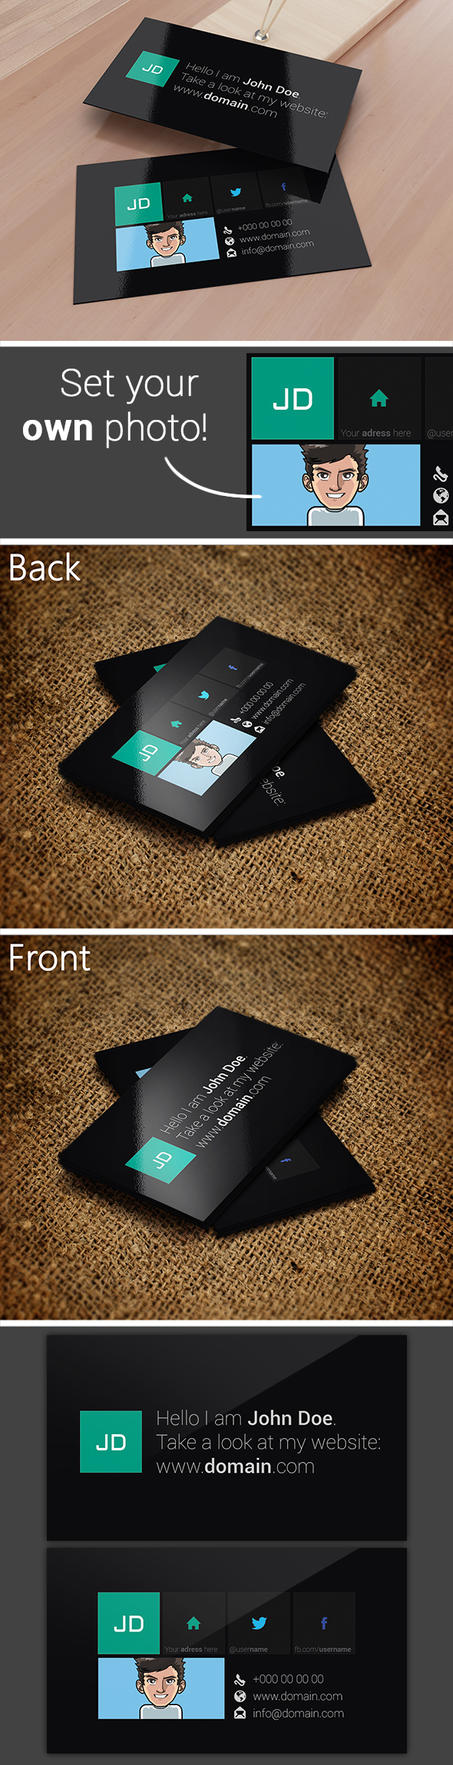 Metro Style Business Card Template by SMHYLMZ